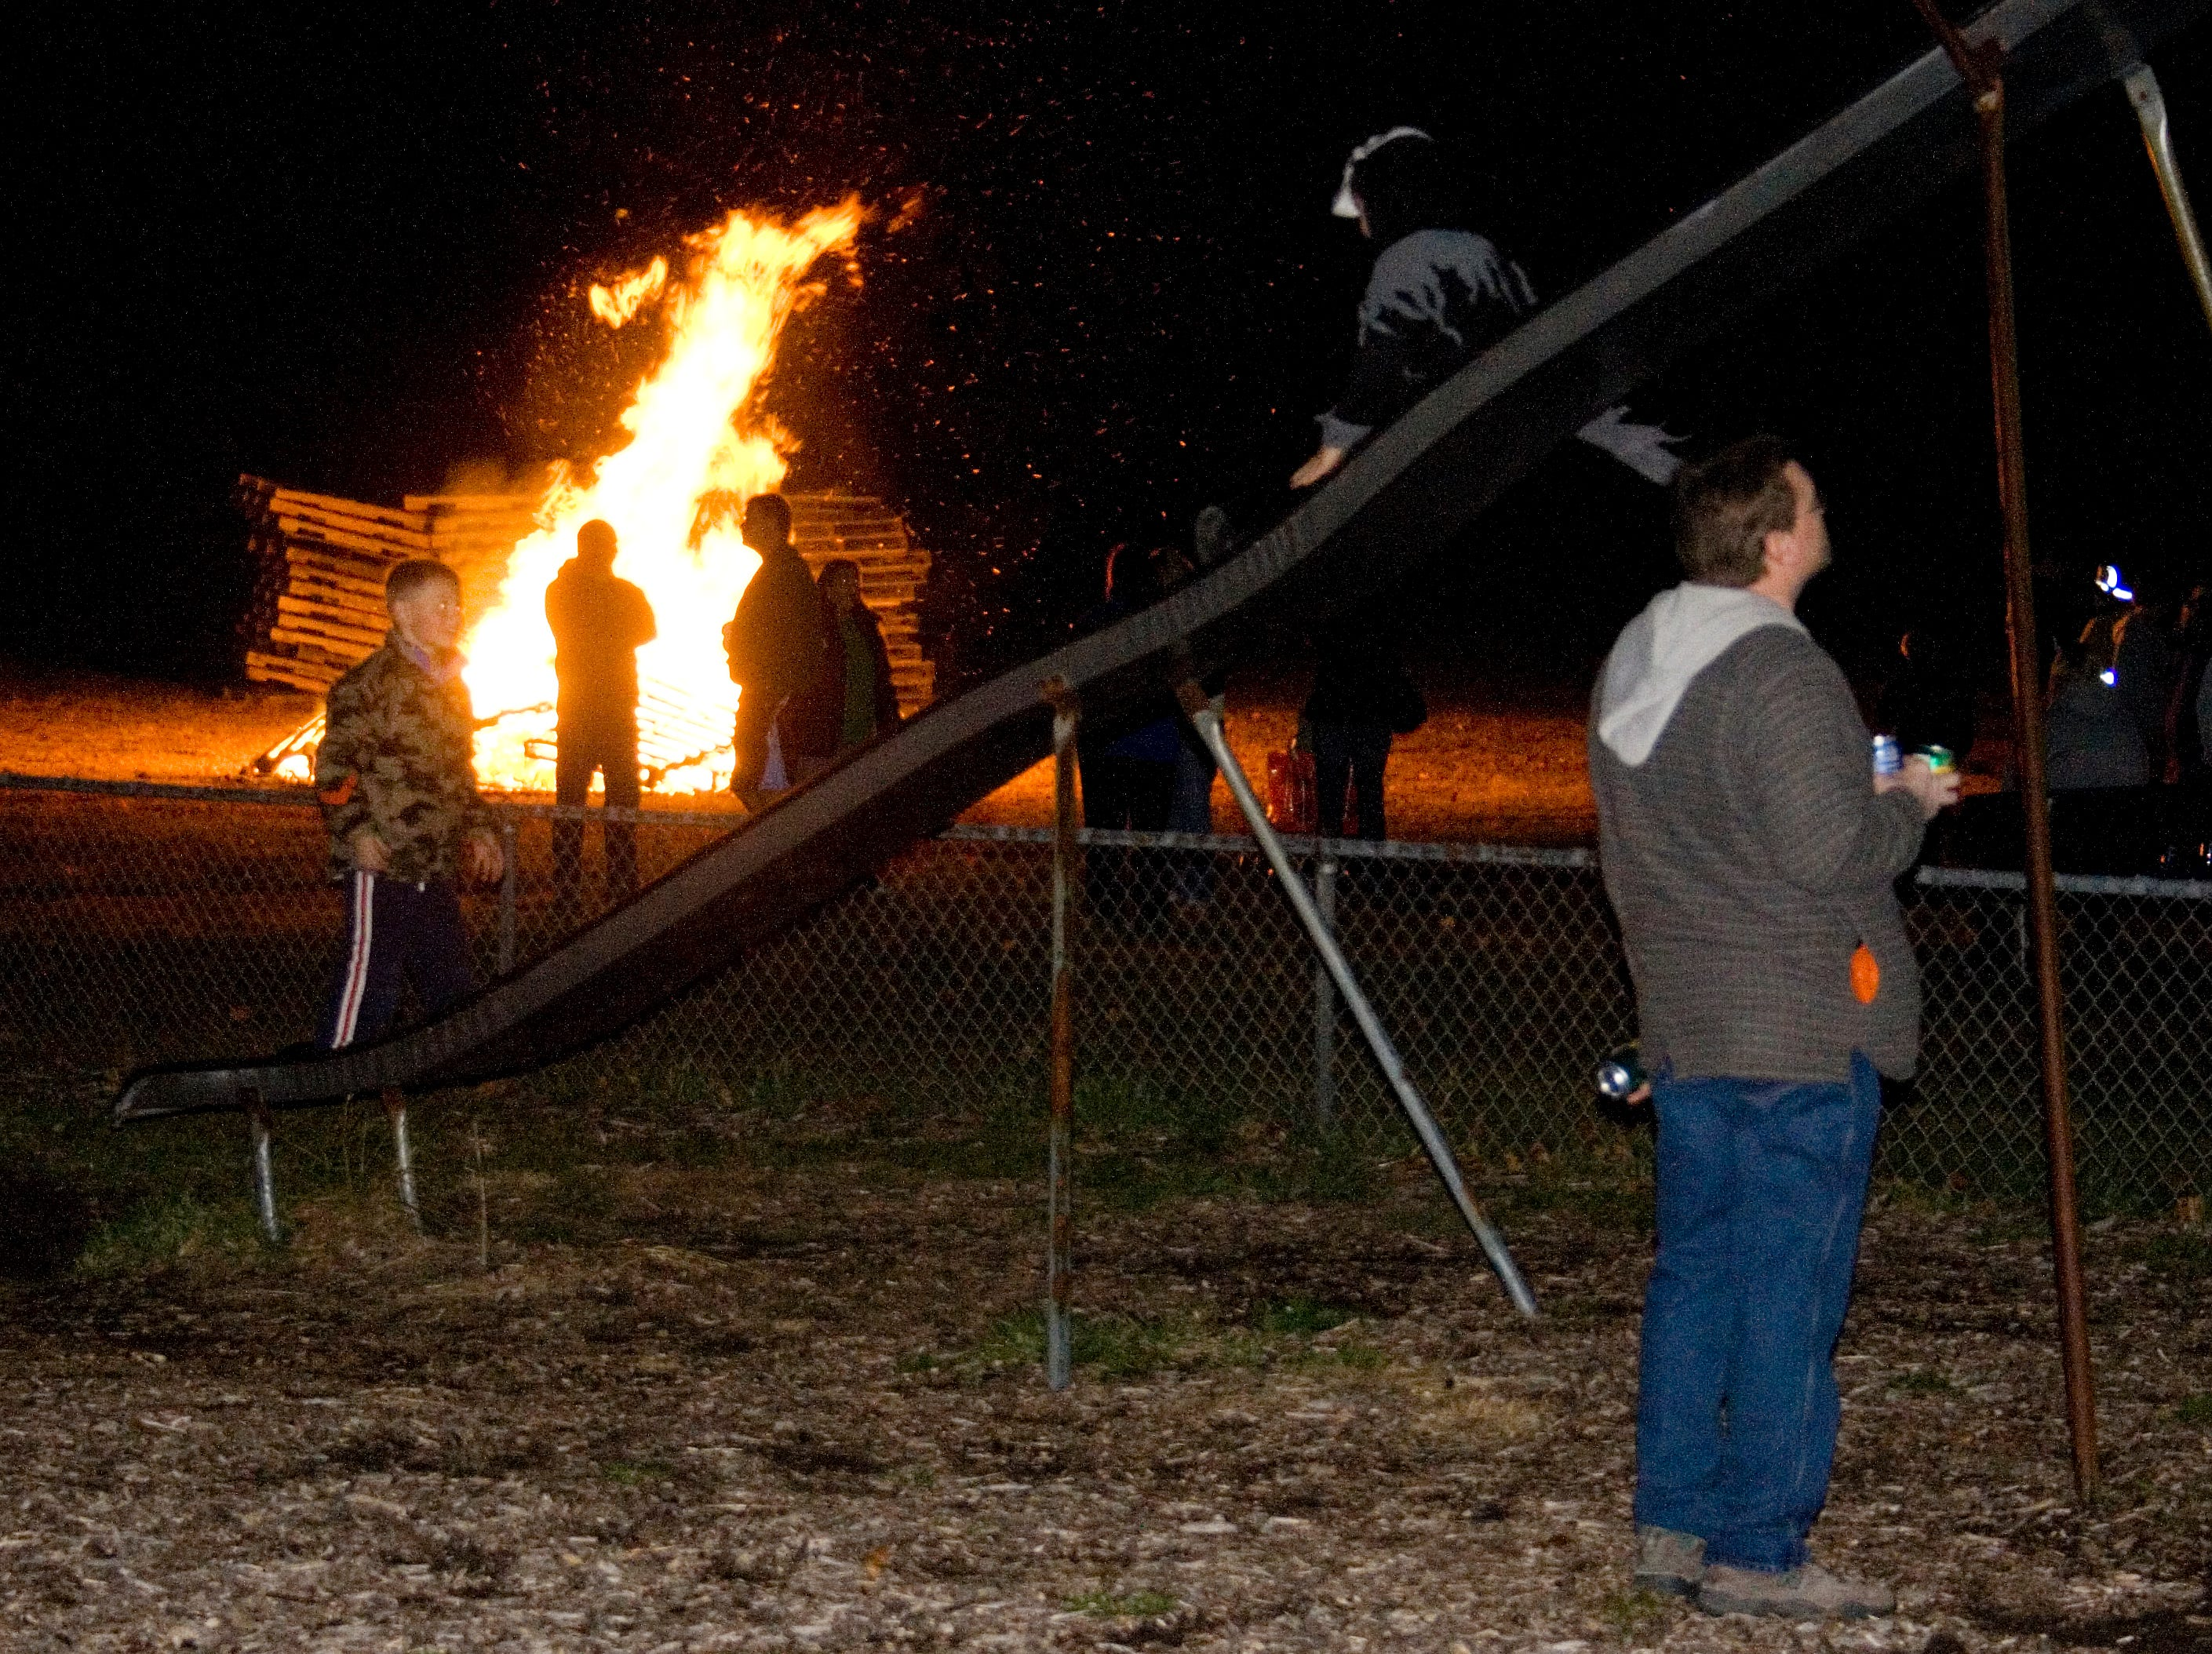 2008: Kids play on a slide at McCann's Park in Elmira Heights on Sunday evening as firefighters build a bonfire in the background. The bonfire was part of a haunted house and several other Halloween activities at the park sponsored by the Elmira Heights Police Benevolent Association.